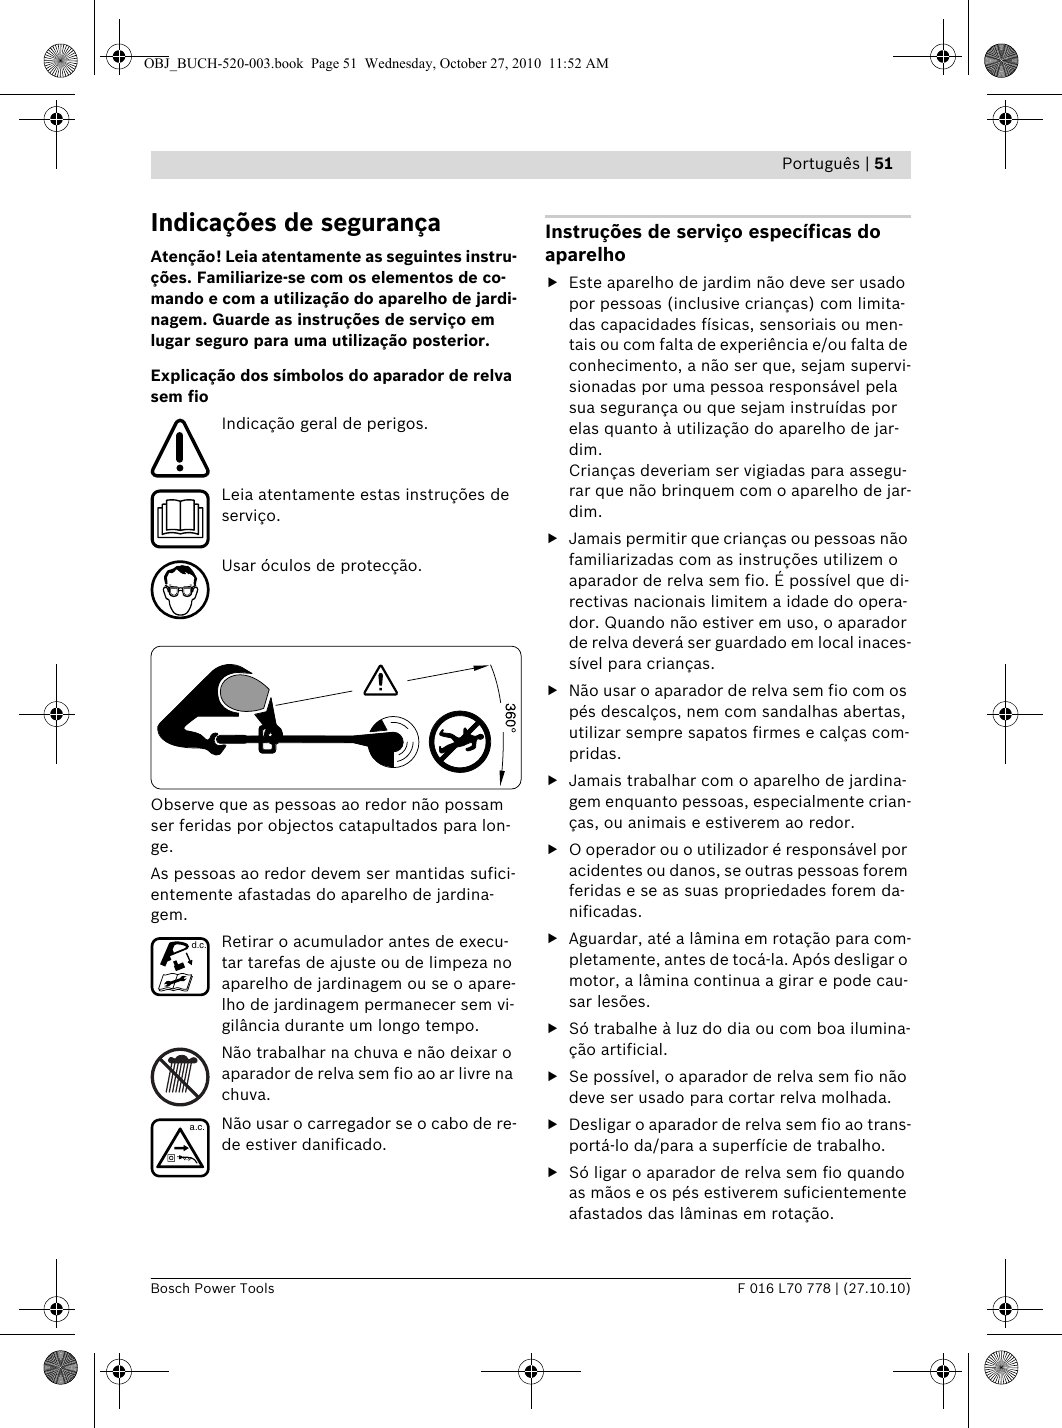 Art26LiManual User Guide Page 51